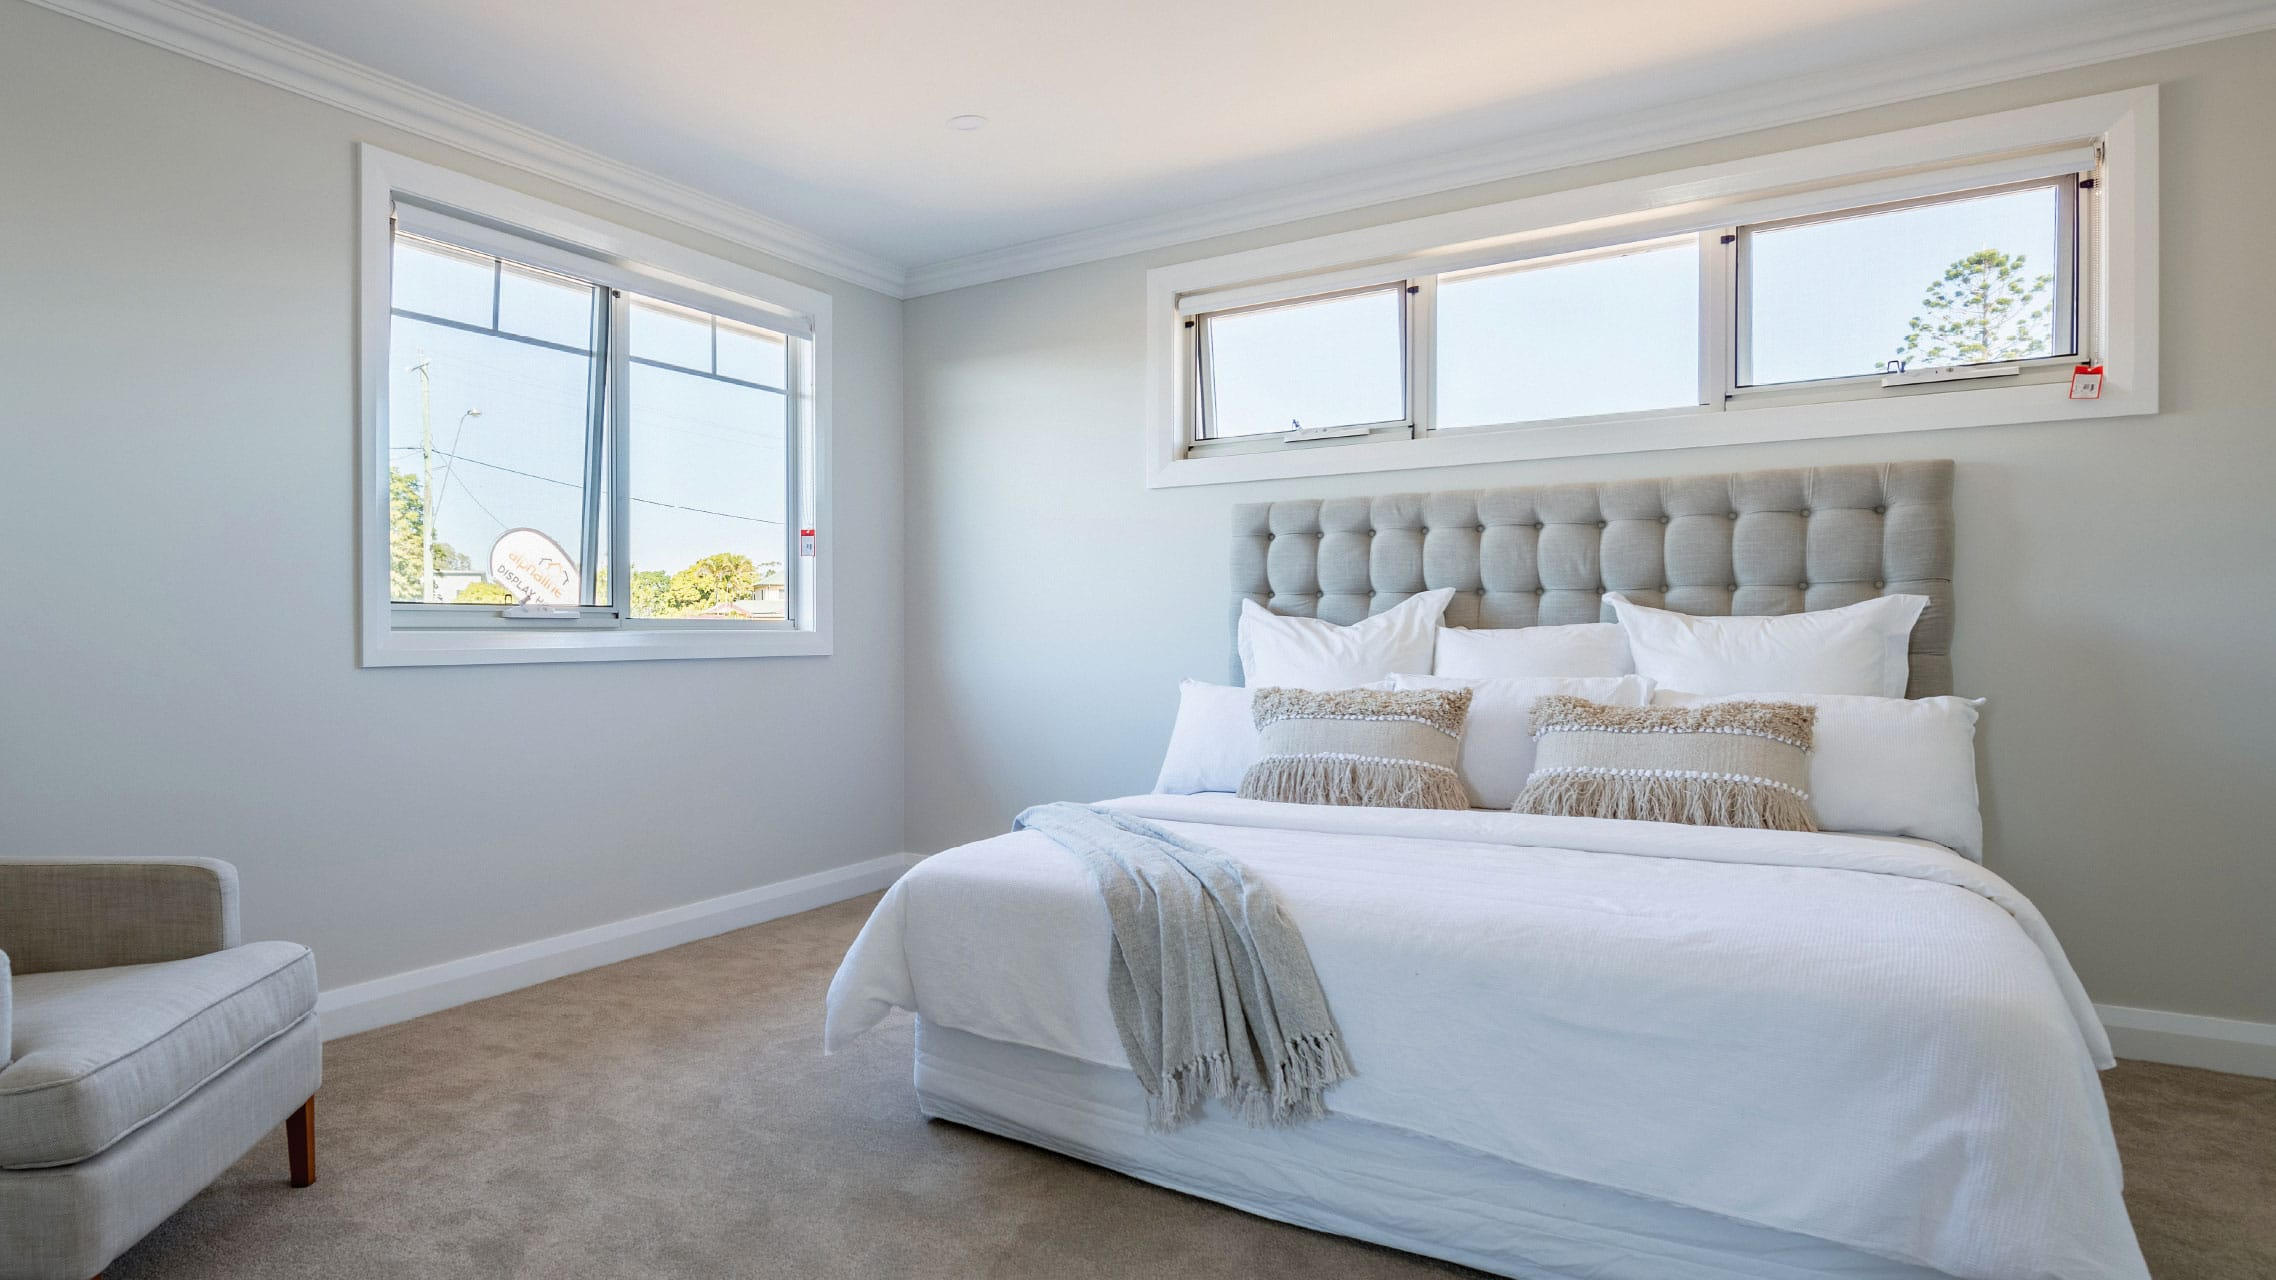 Two White Aluminium Awning Windows in a bedroom